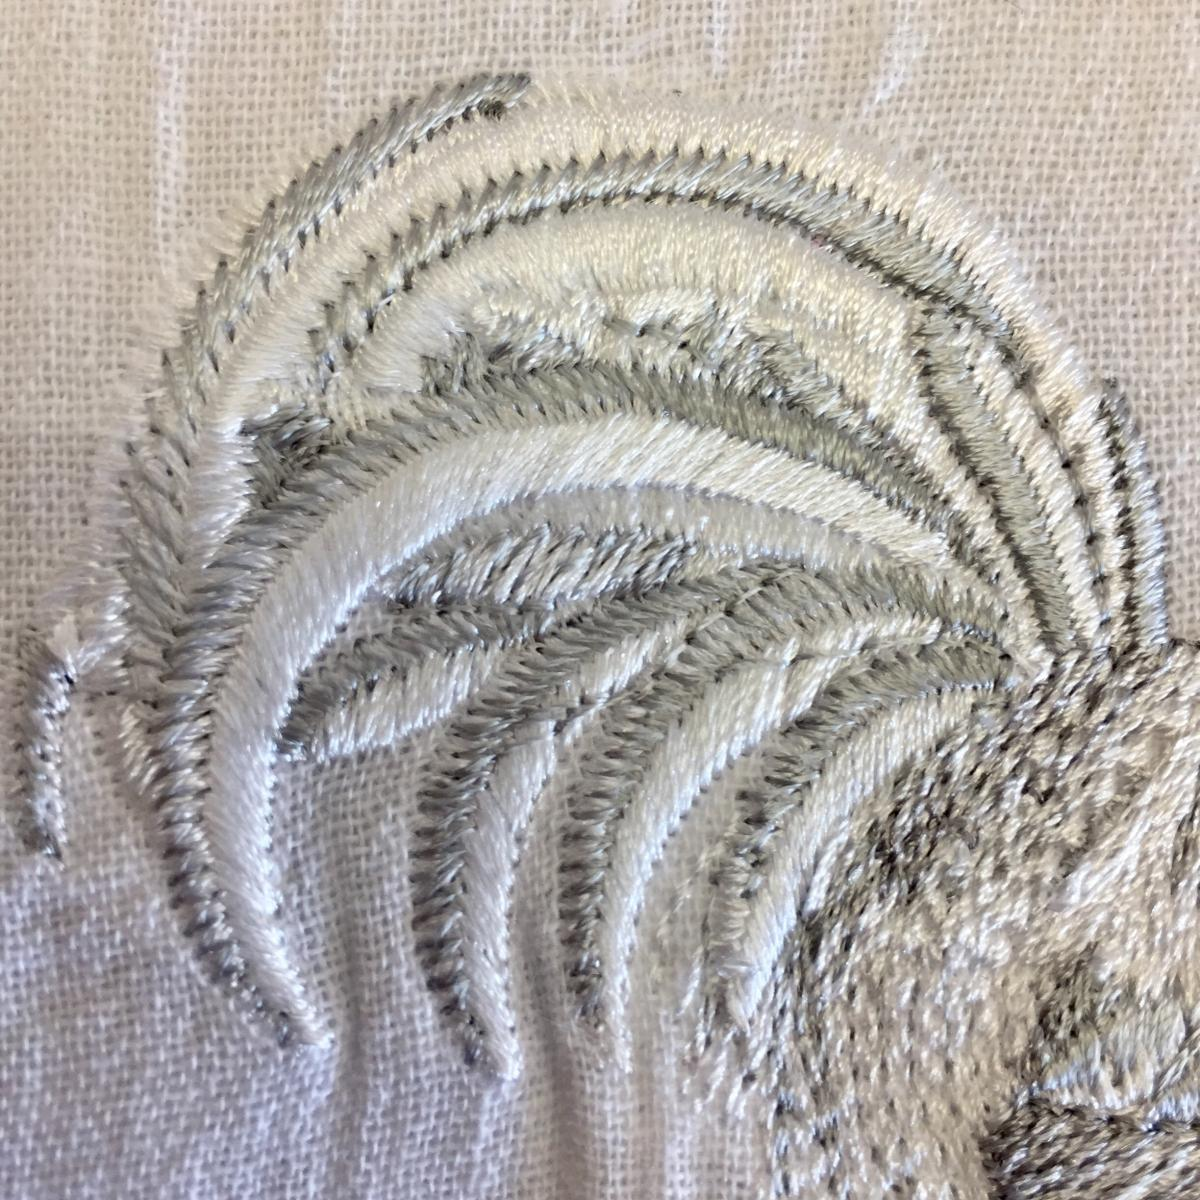 Embroidered Flour-Sack-Towel, White Rooster on Fence